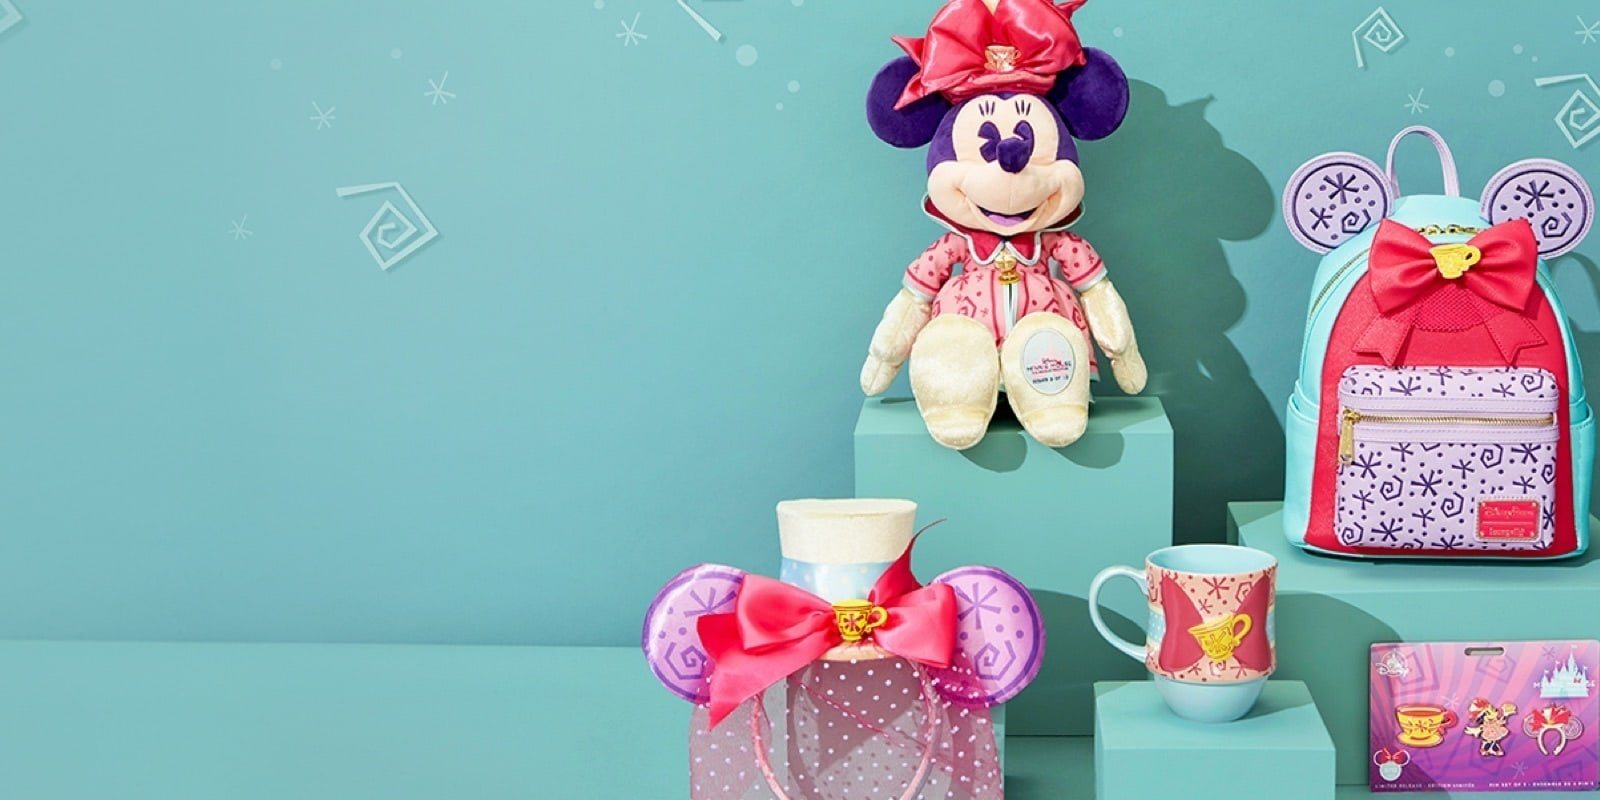 Minnie Mouse The Main Attraction collection Mars